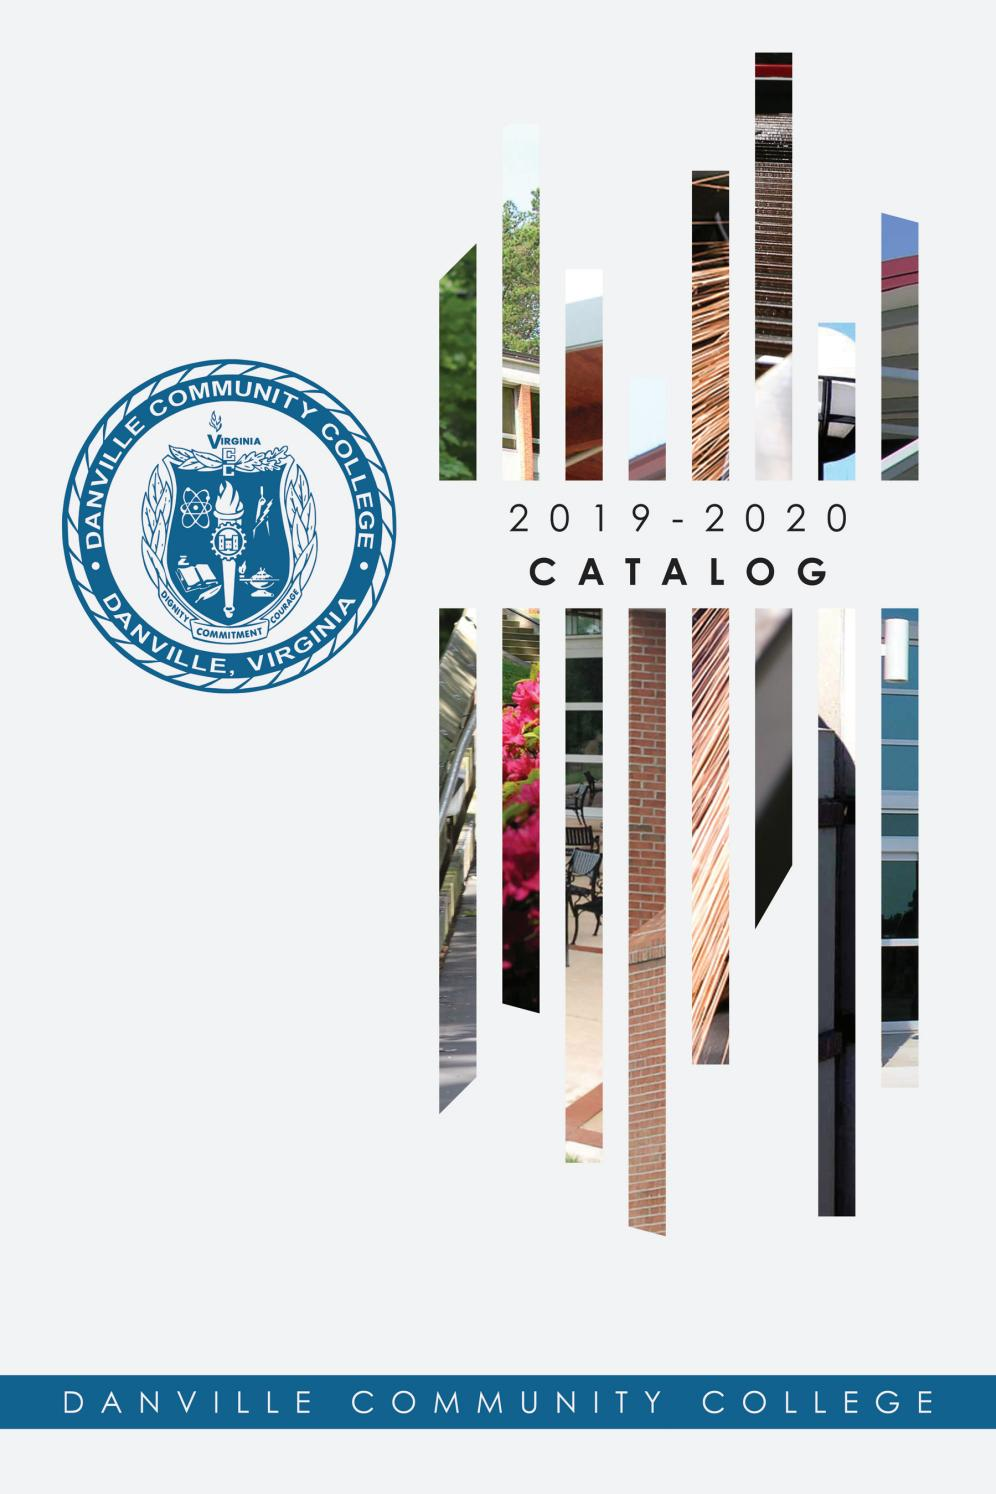 2019-2020 Catalog by Danville Community College - issuu